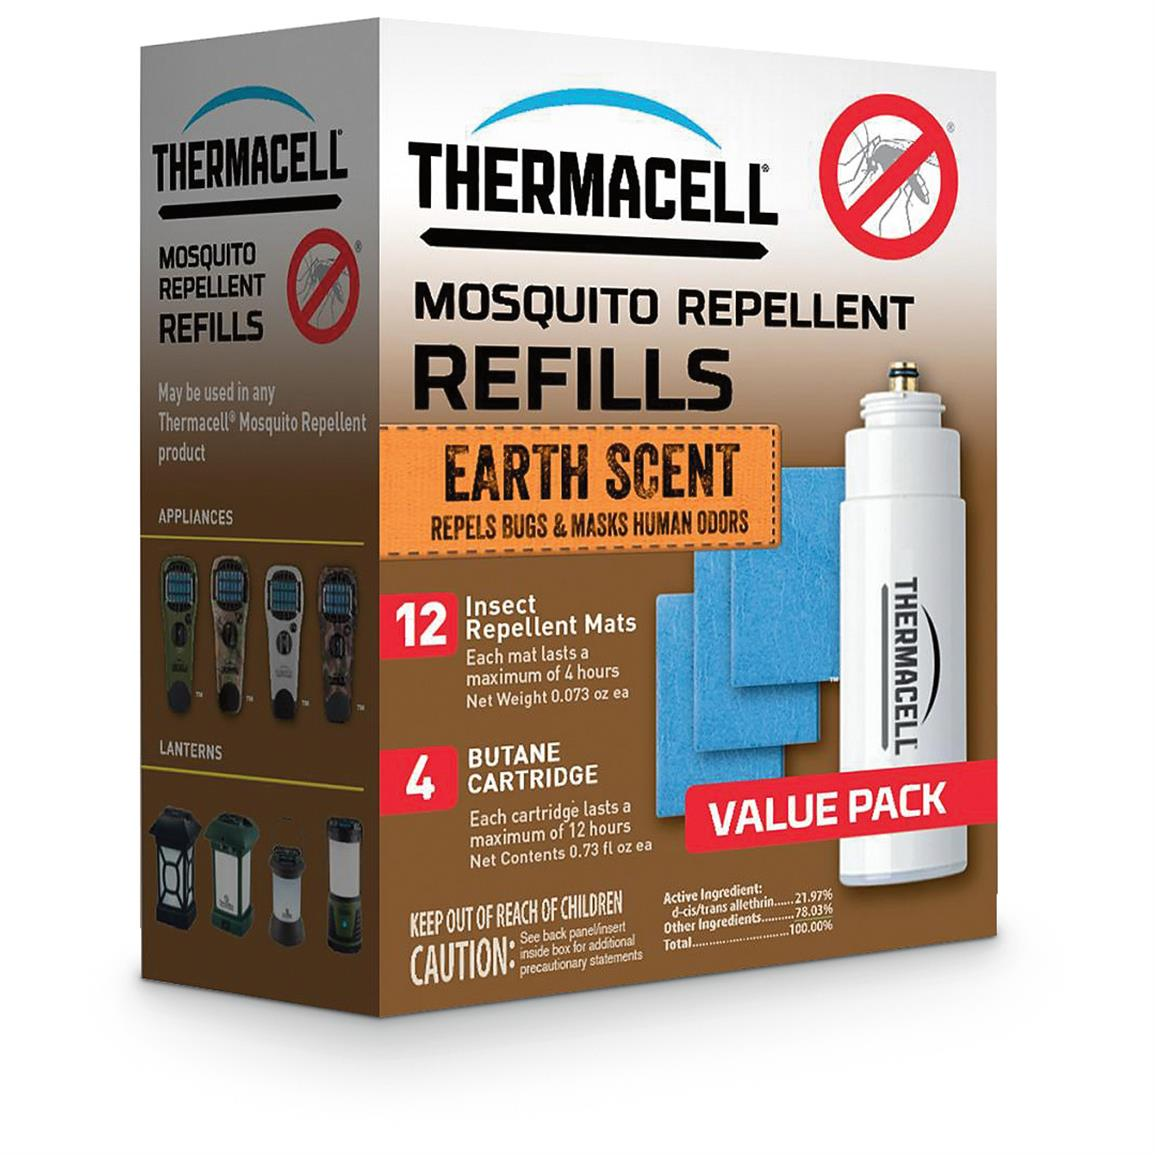 Thermacell Mosquito Repellent Refill Value Pack, Earth Scent